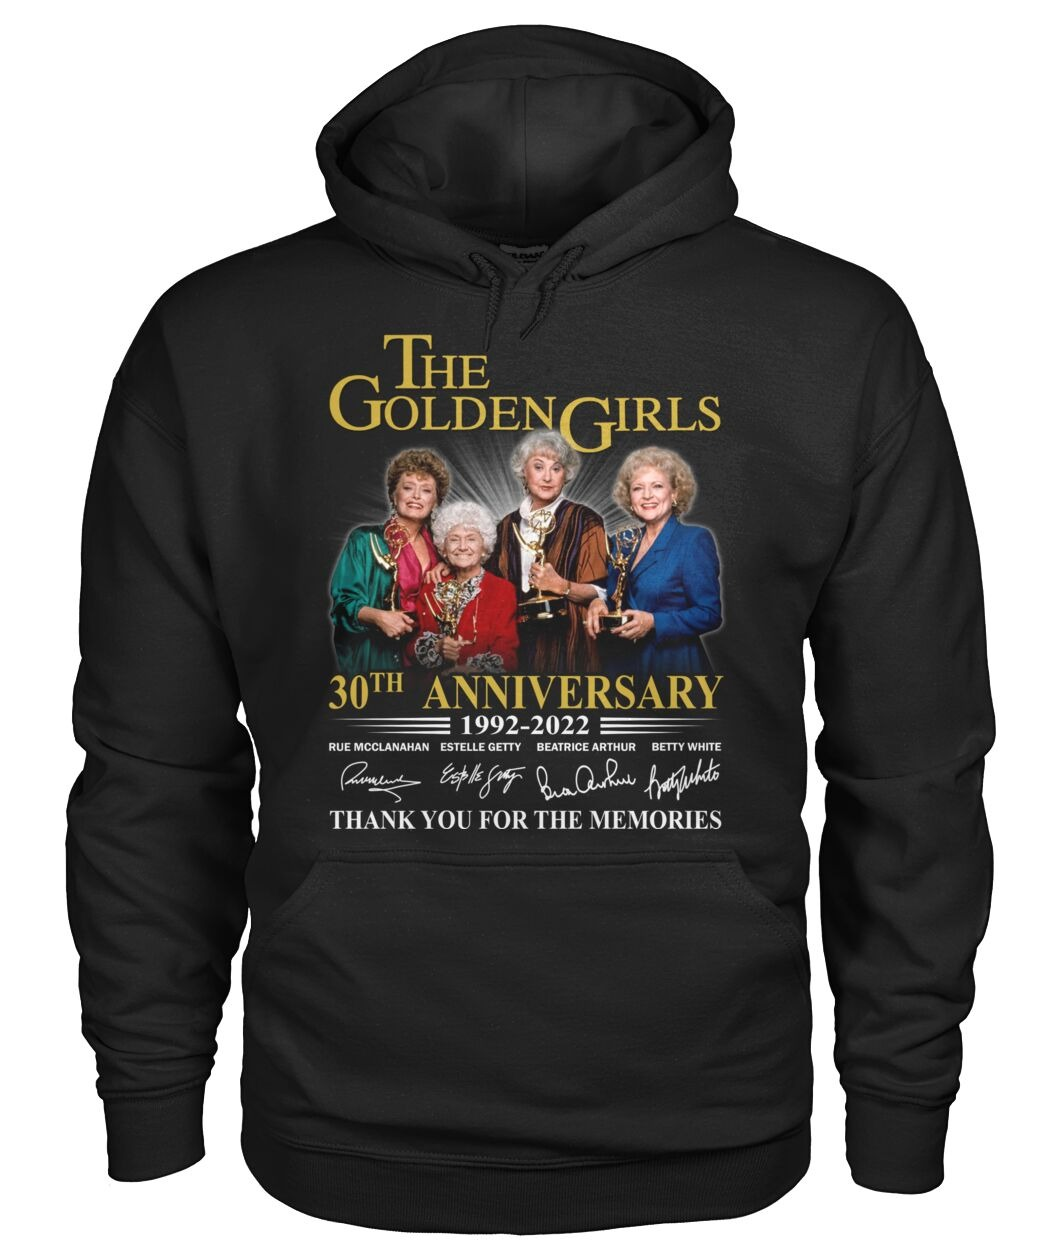 The golden girls 30th anniversary 1992 2022 thank you for the memories hoodie